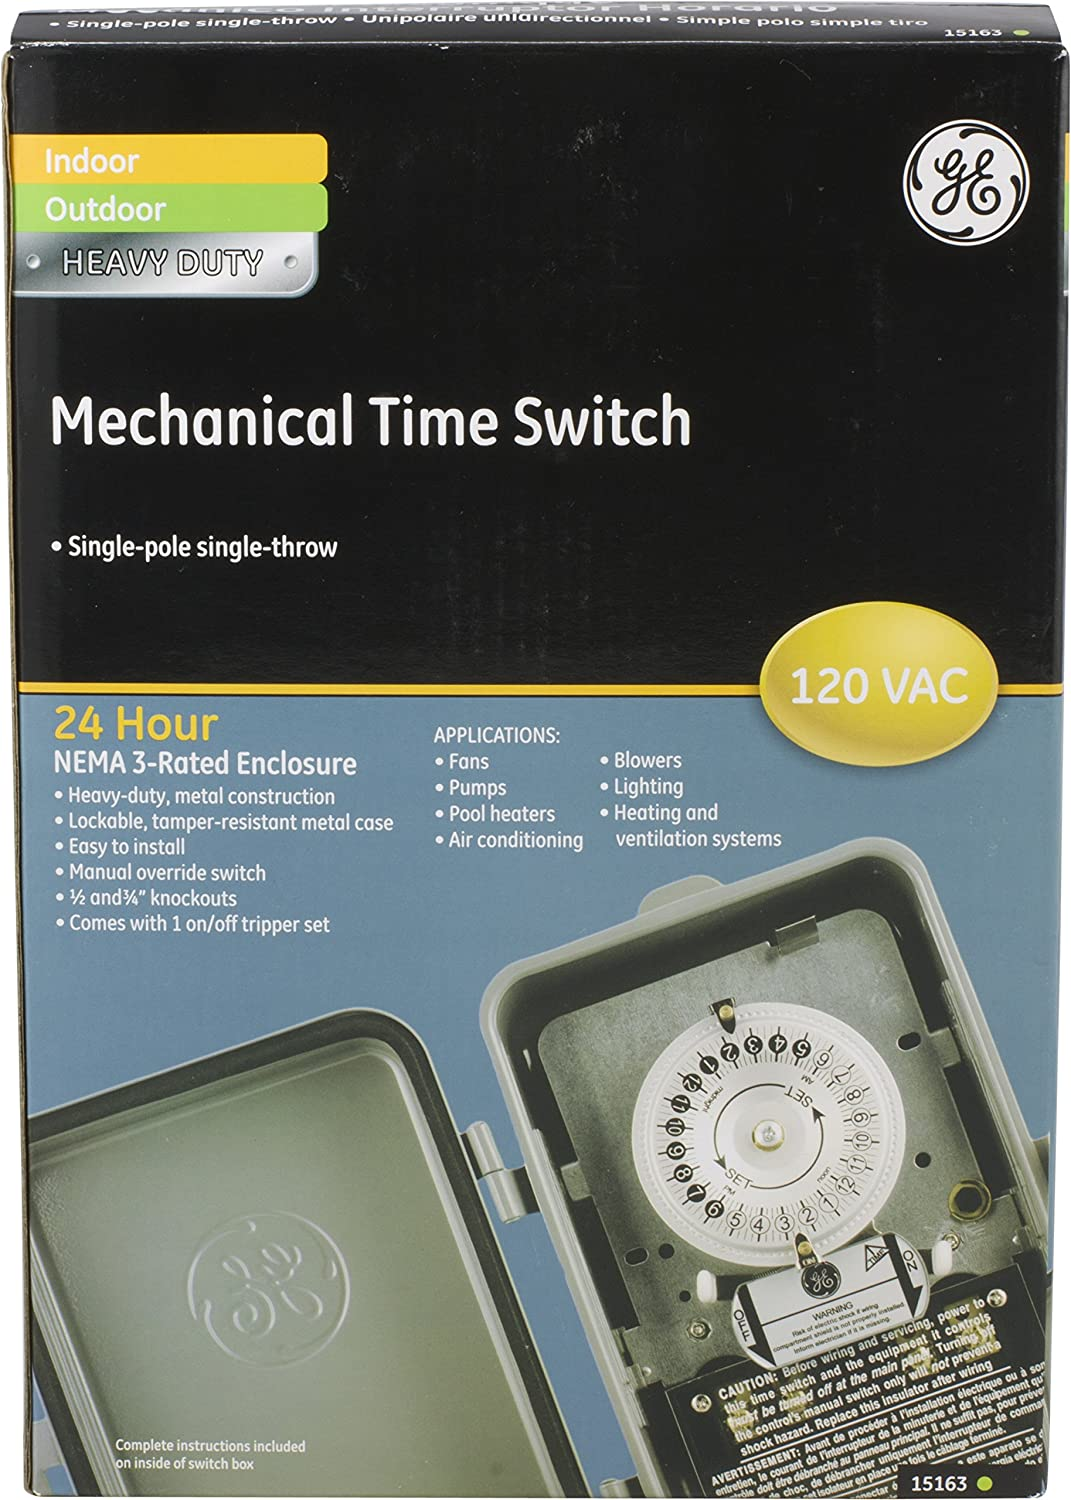 Ge 15163 24 Hour Indoor Outdoor Heavy Duty Mechanical Time Switch Spa Air Dpdt Wiring Diagram 120 Vac Electrical Timers